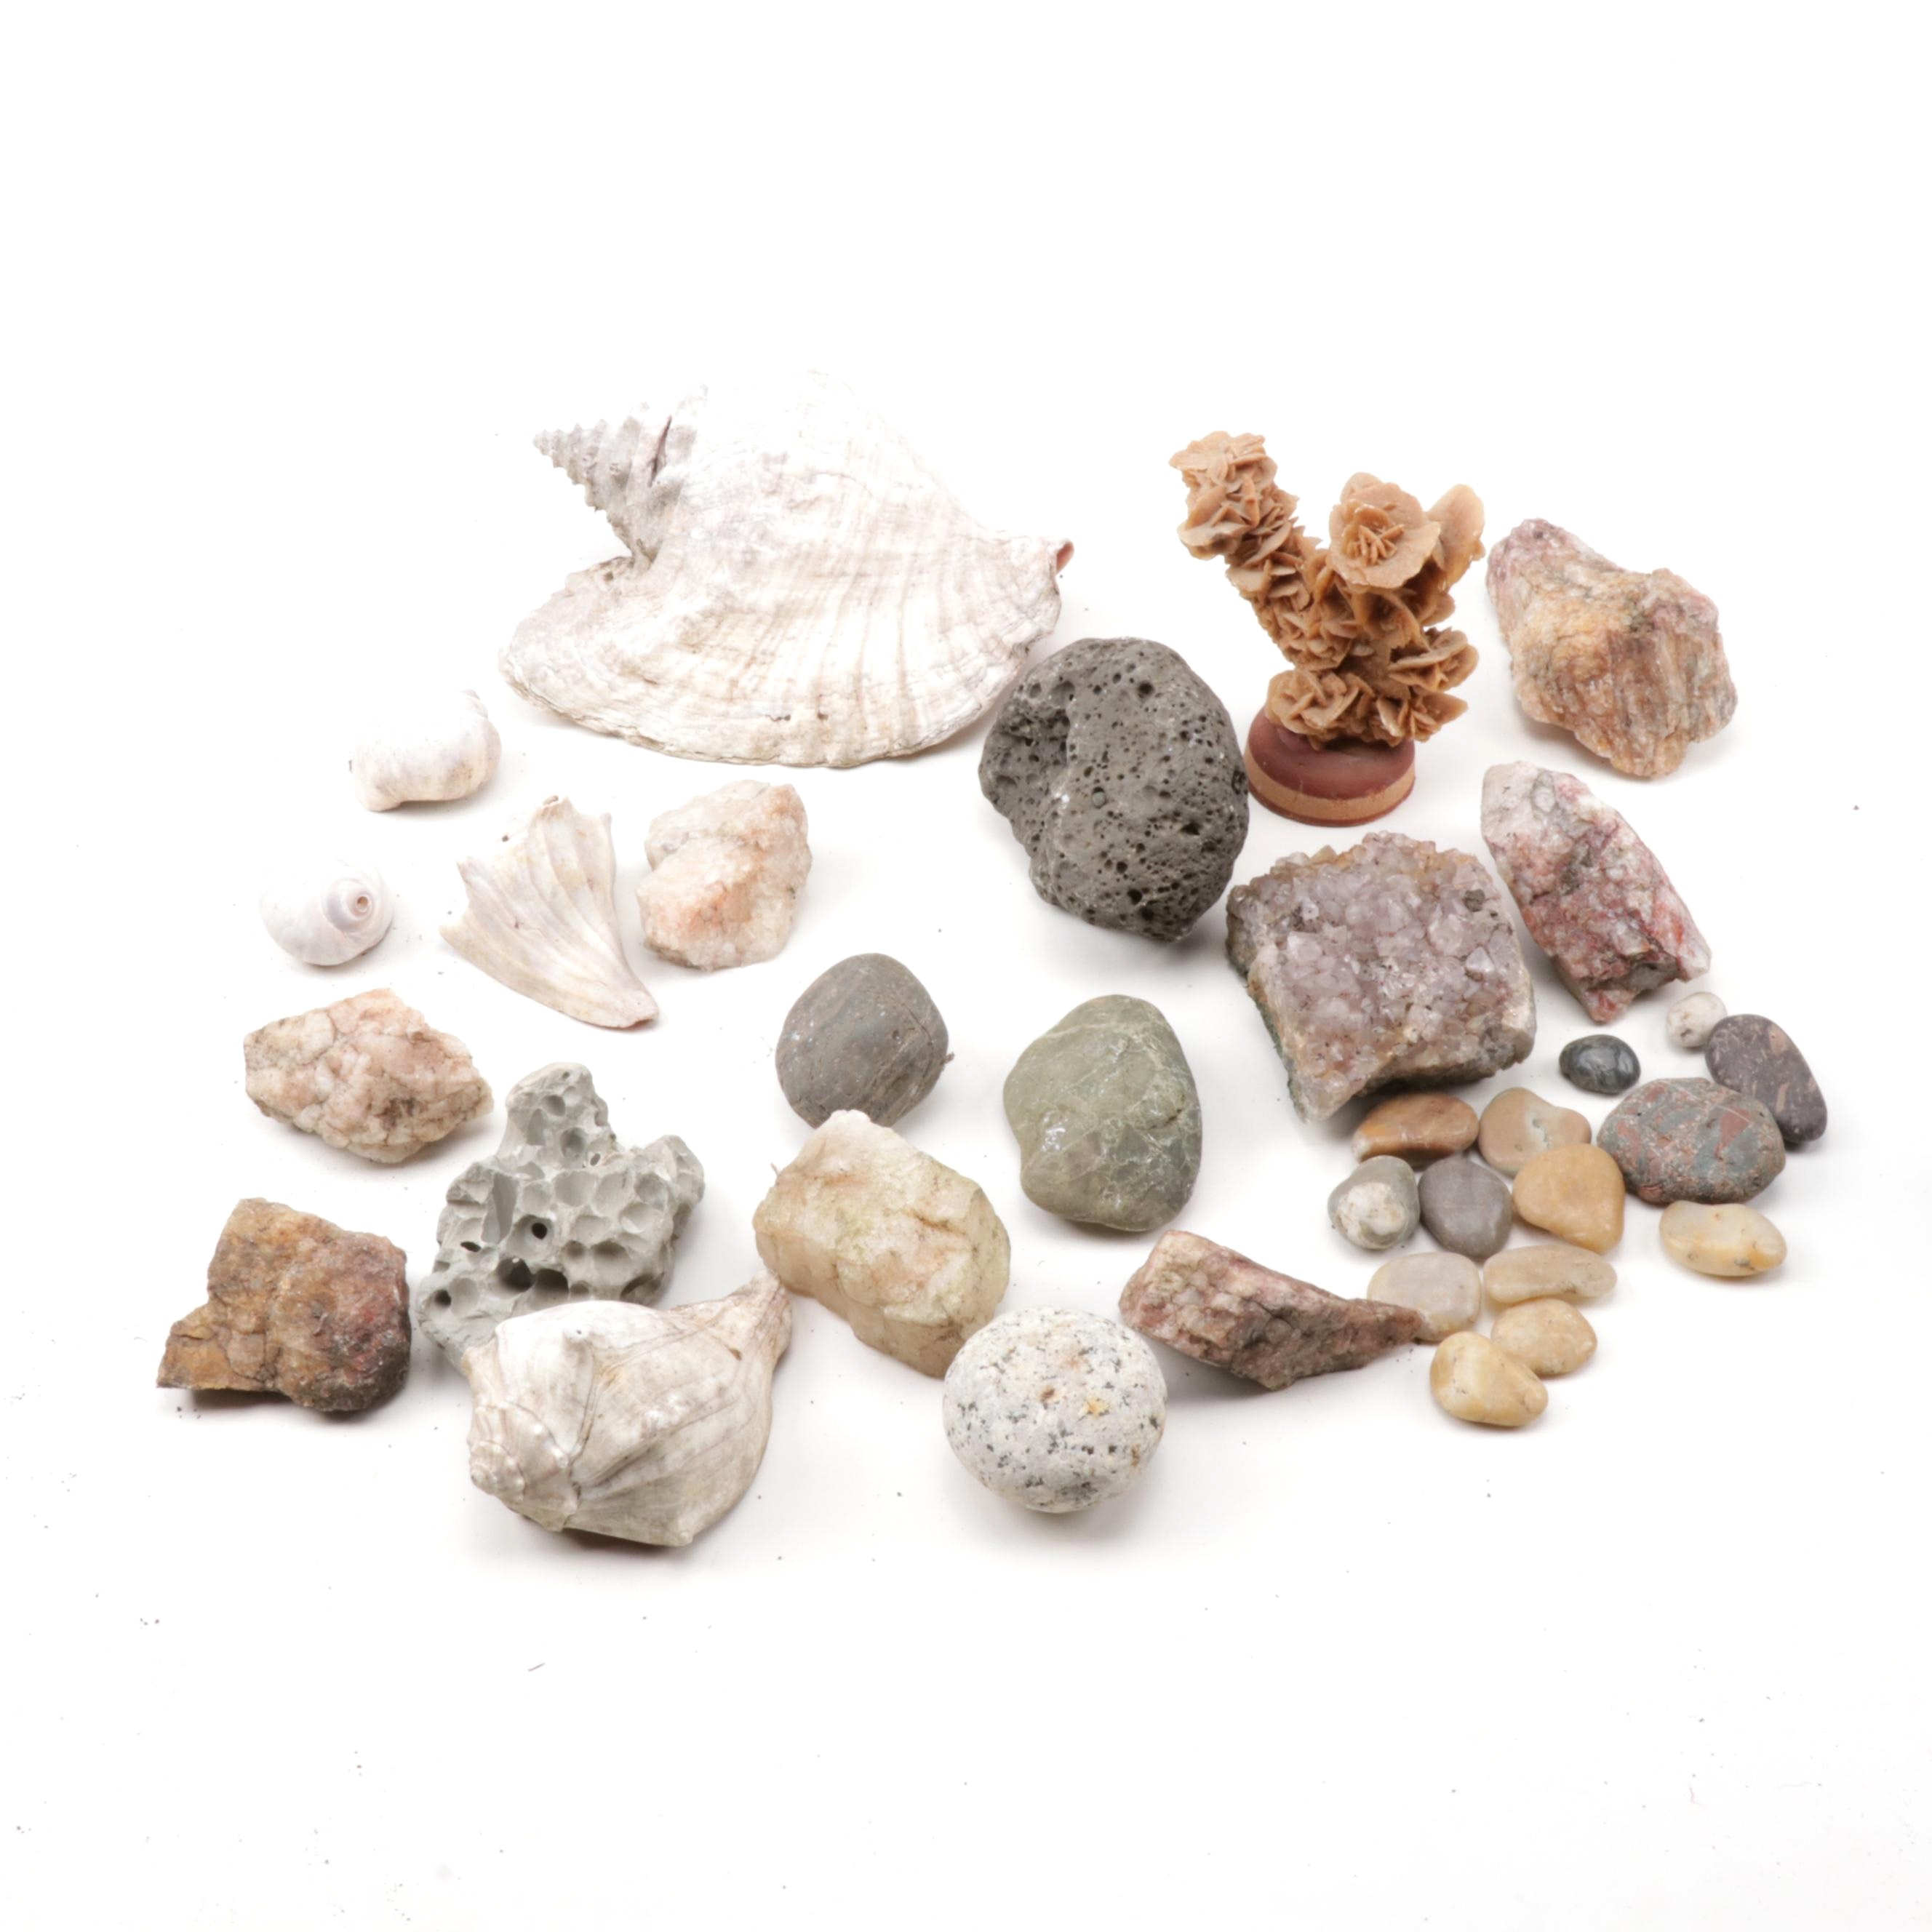 Rock, Mineral, and Shell Specimens